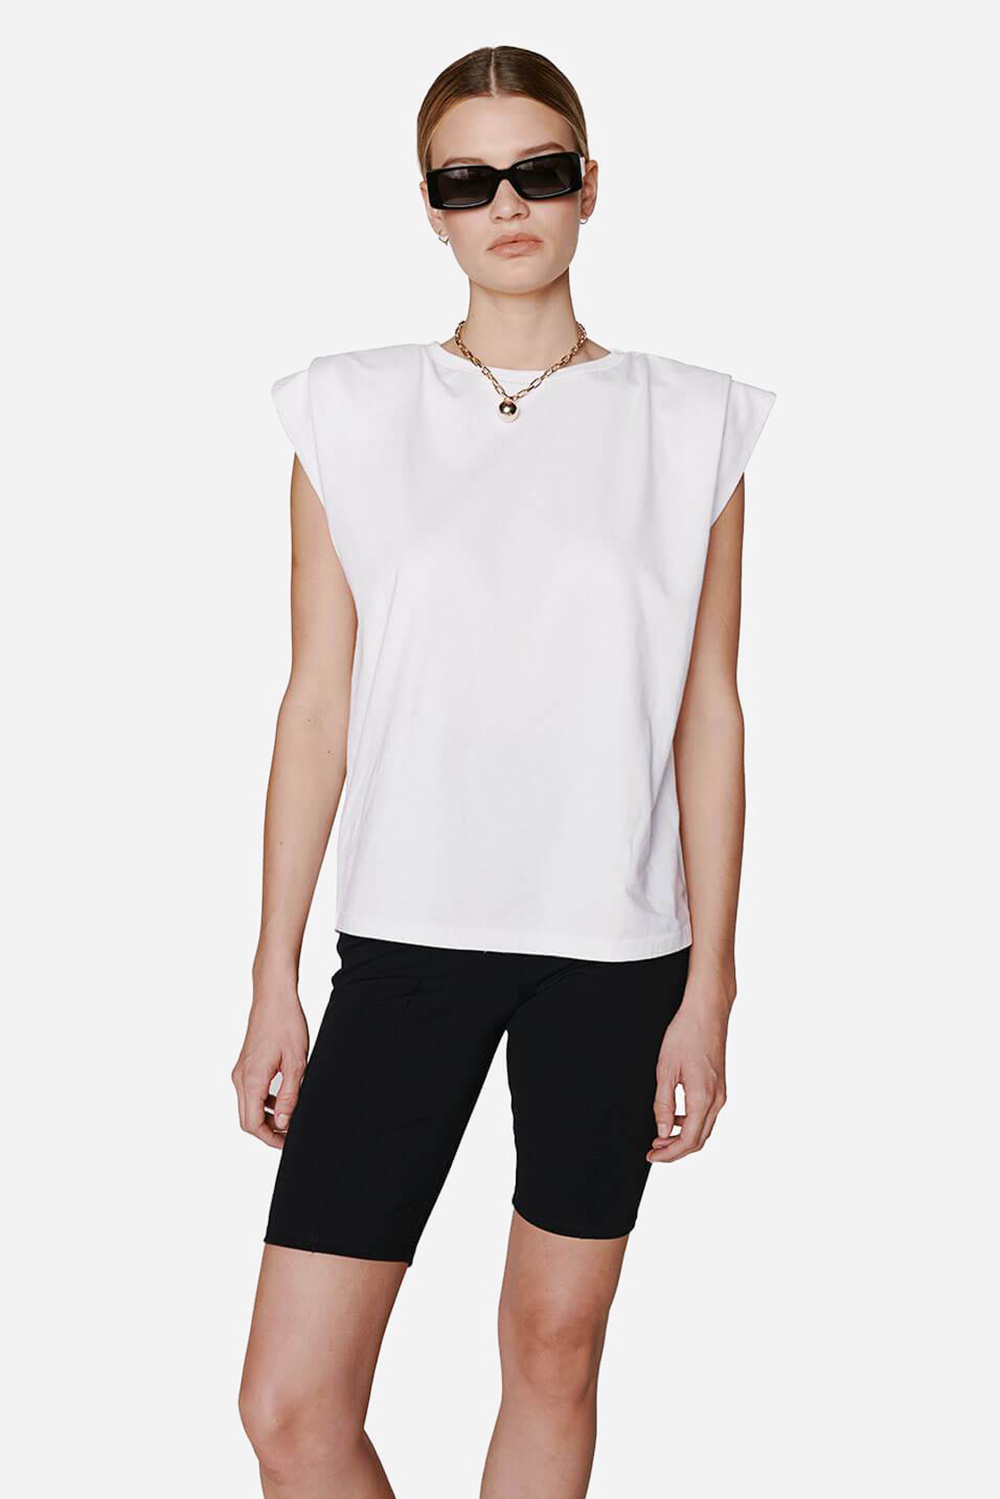 Anine Bing t-shirt Tanner A-08-2169-100 wit